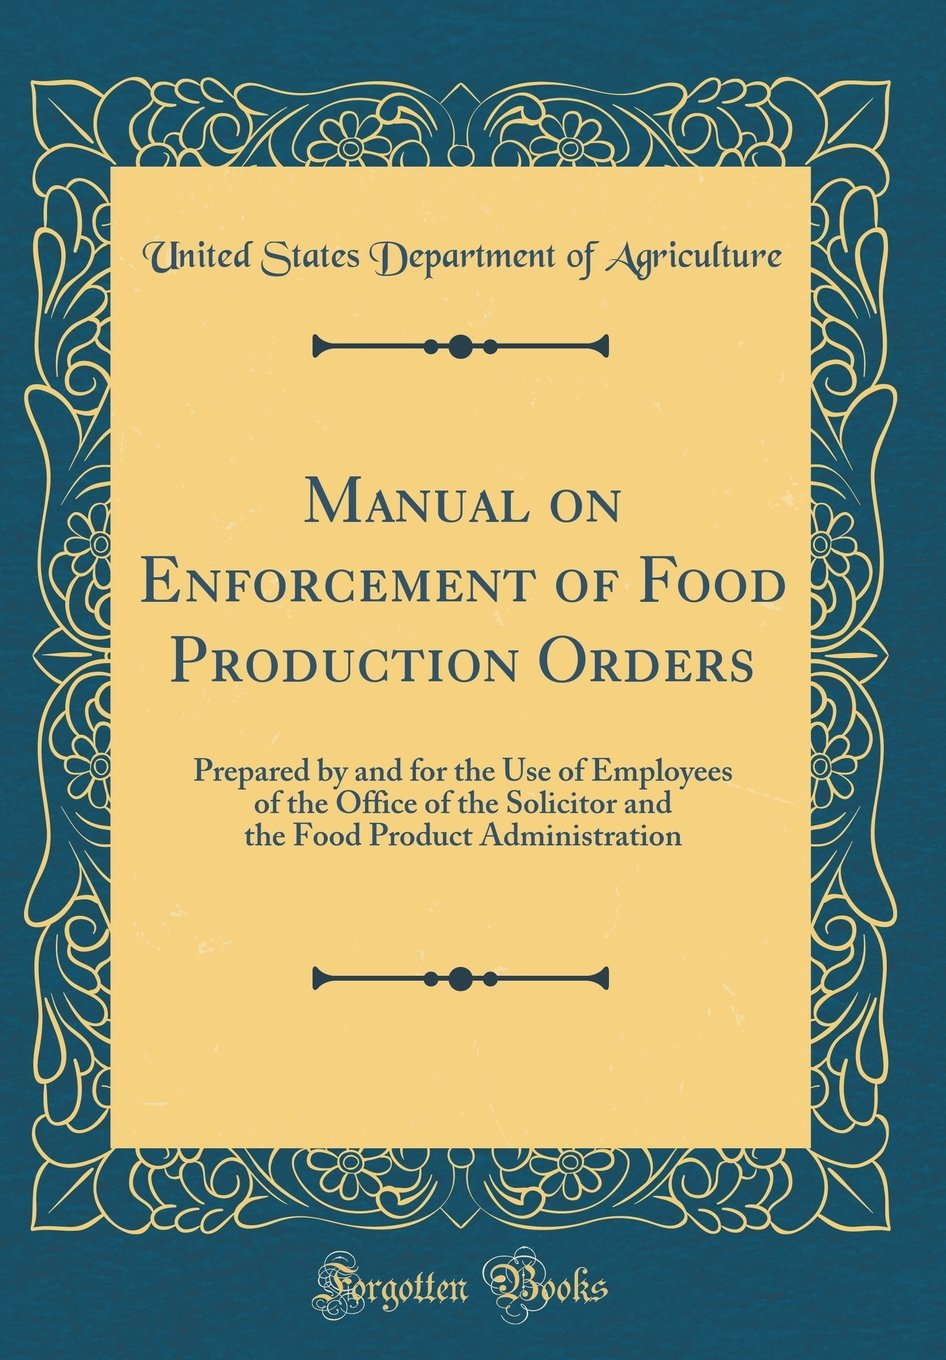 Manual on Enforcement of Food Production Orders: Prepared by and for the Use of Employees of the Office of the Solicitor and the Food Product Administration (Classic Reprint) PDF